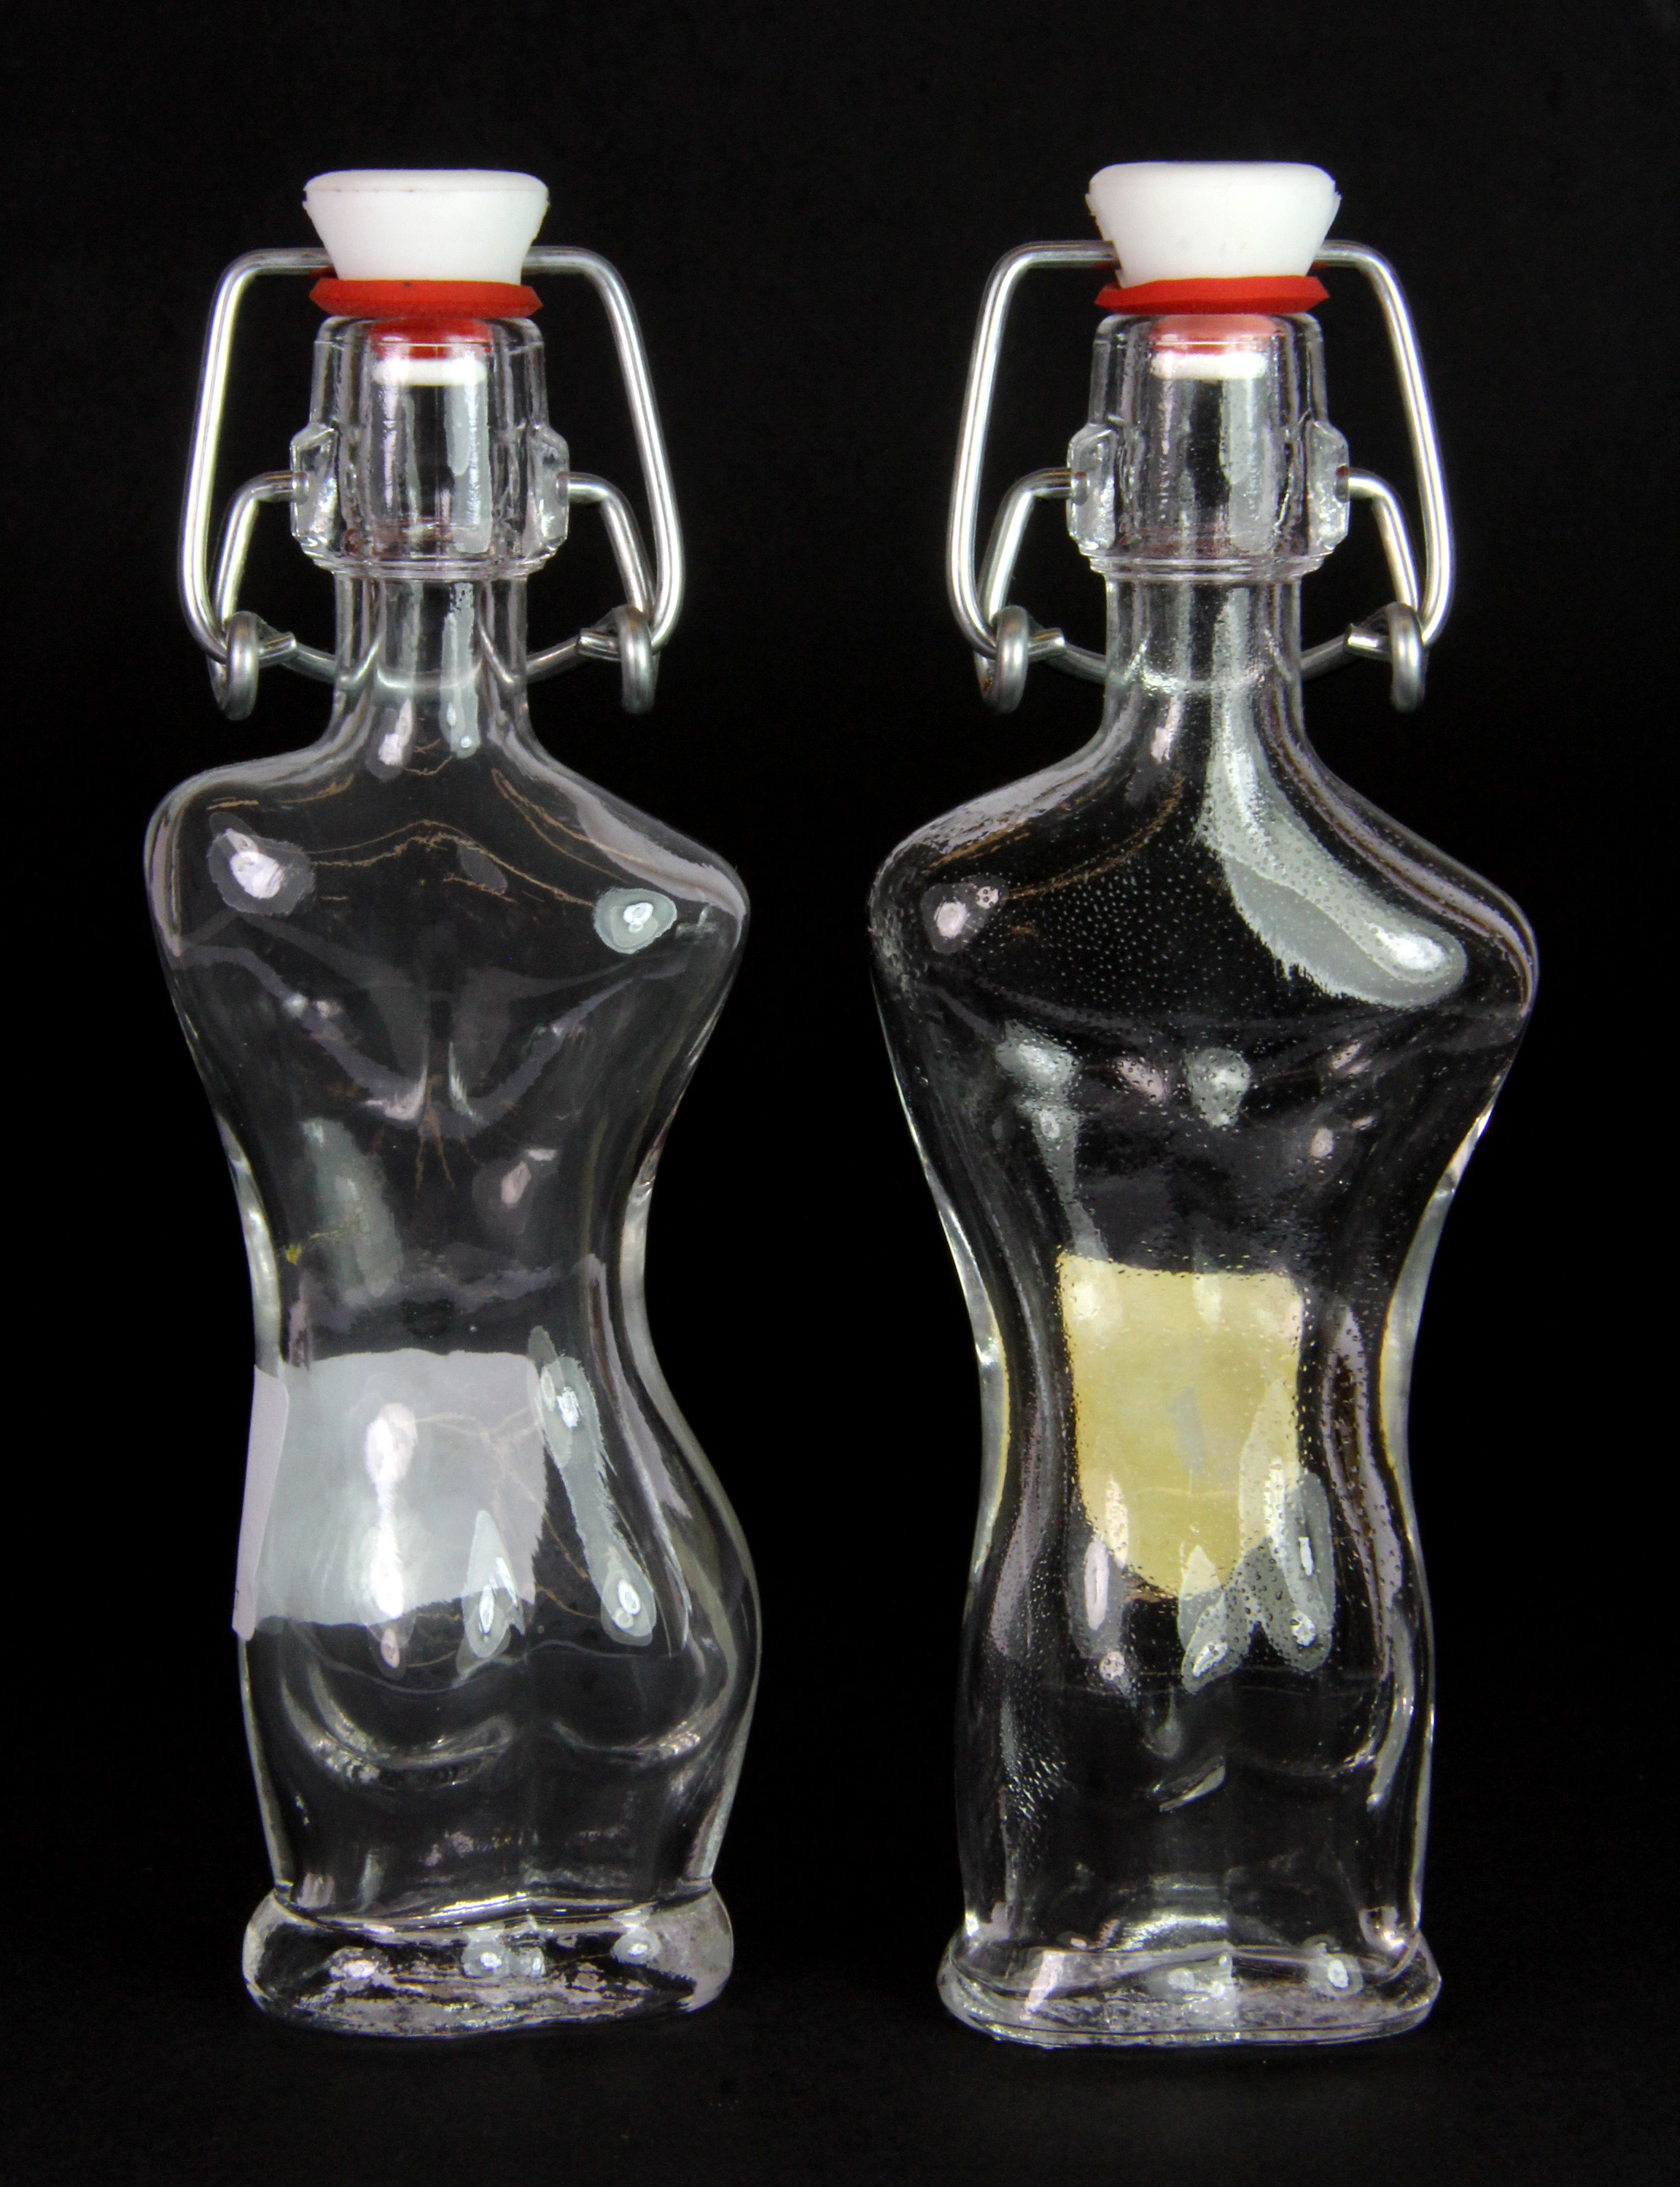 Interesting Bottles A Pair Of Interesting Vintage Marc De Savoie Bottles H 15cm